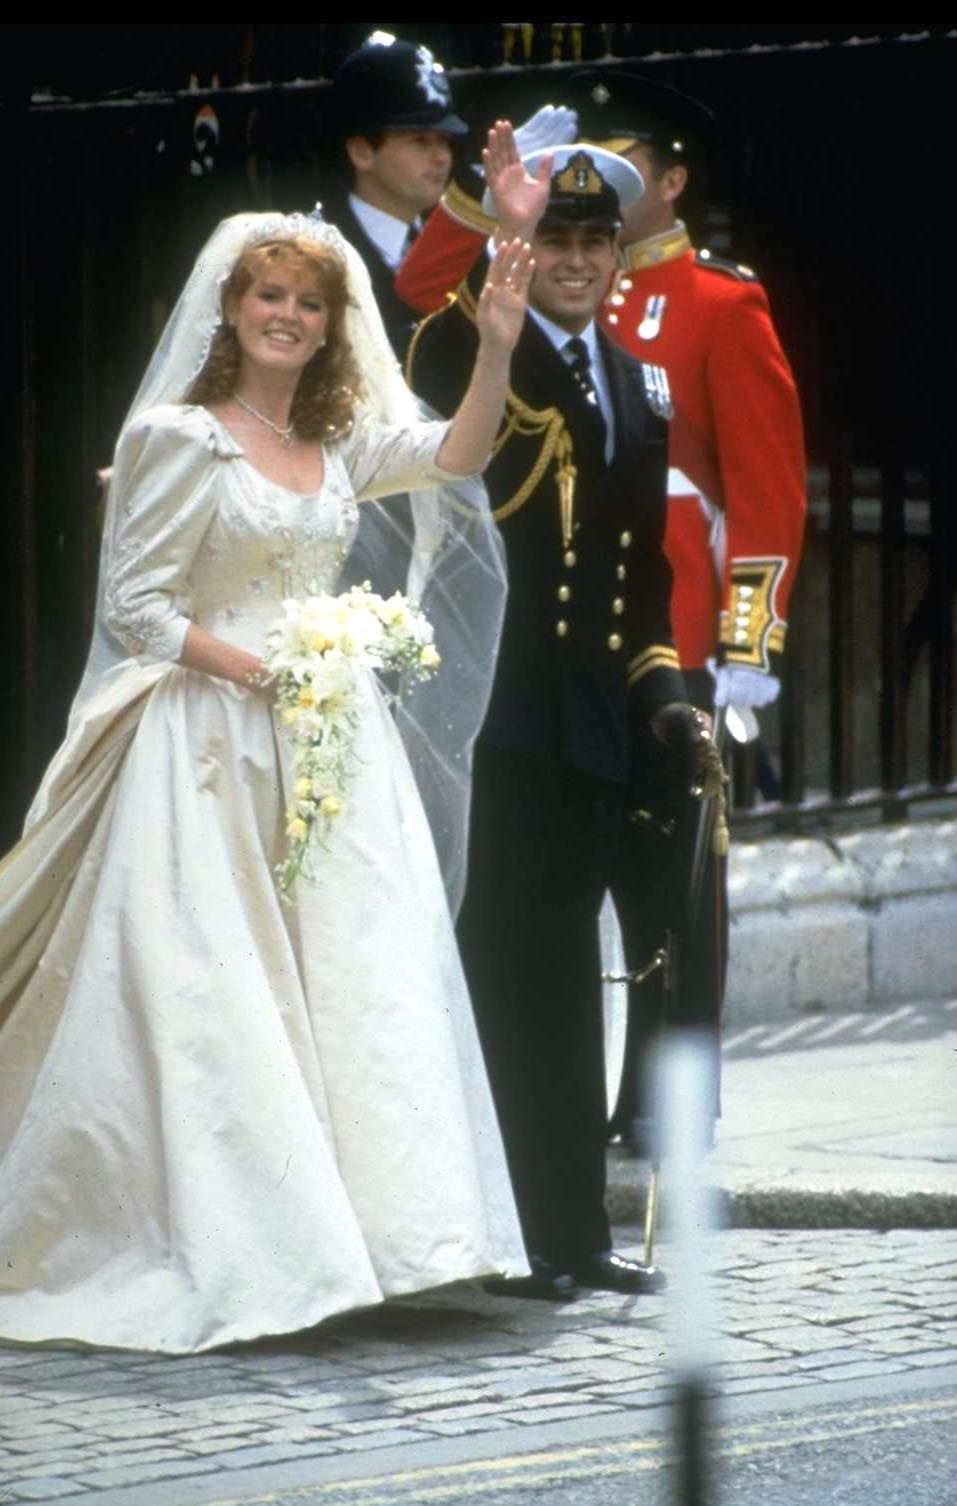 35 Iconic Royal Wedding Dresses Best Royal Wedding Gowns Of All Time,Wedding Dress Light Blue